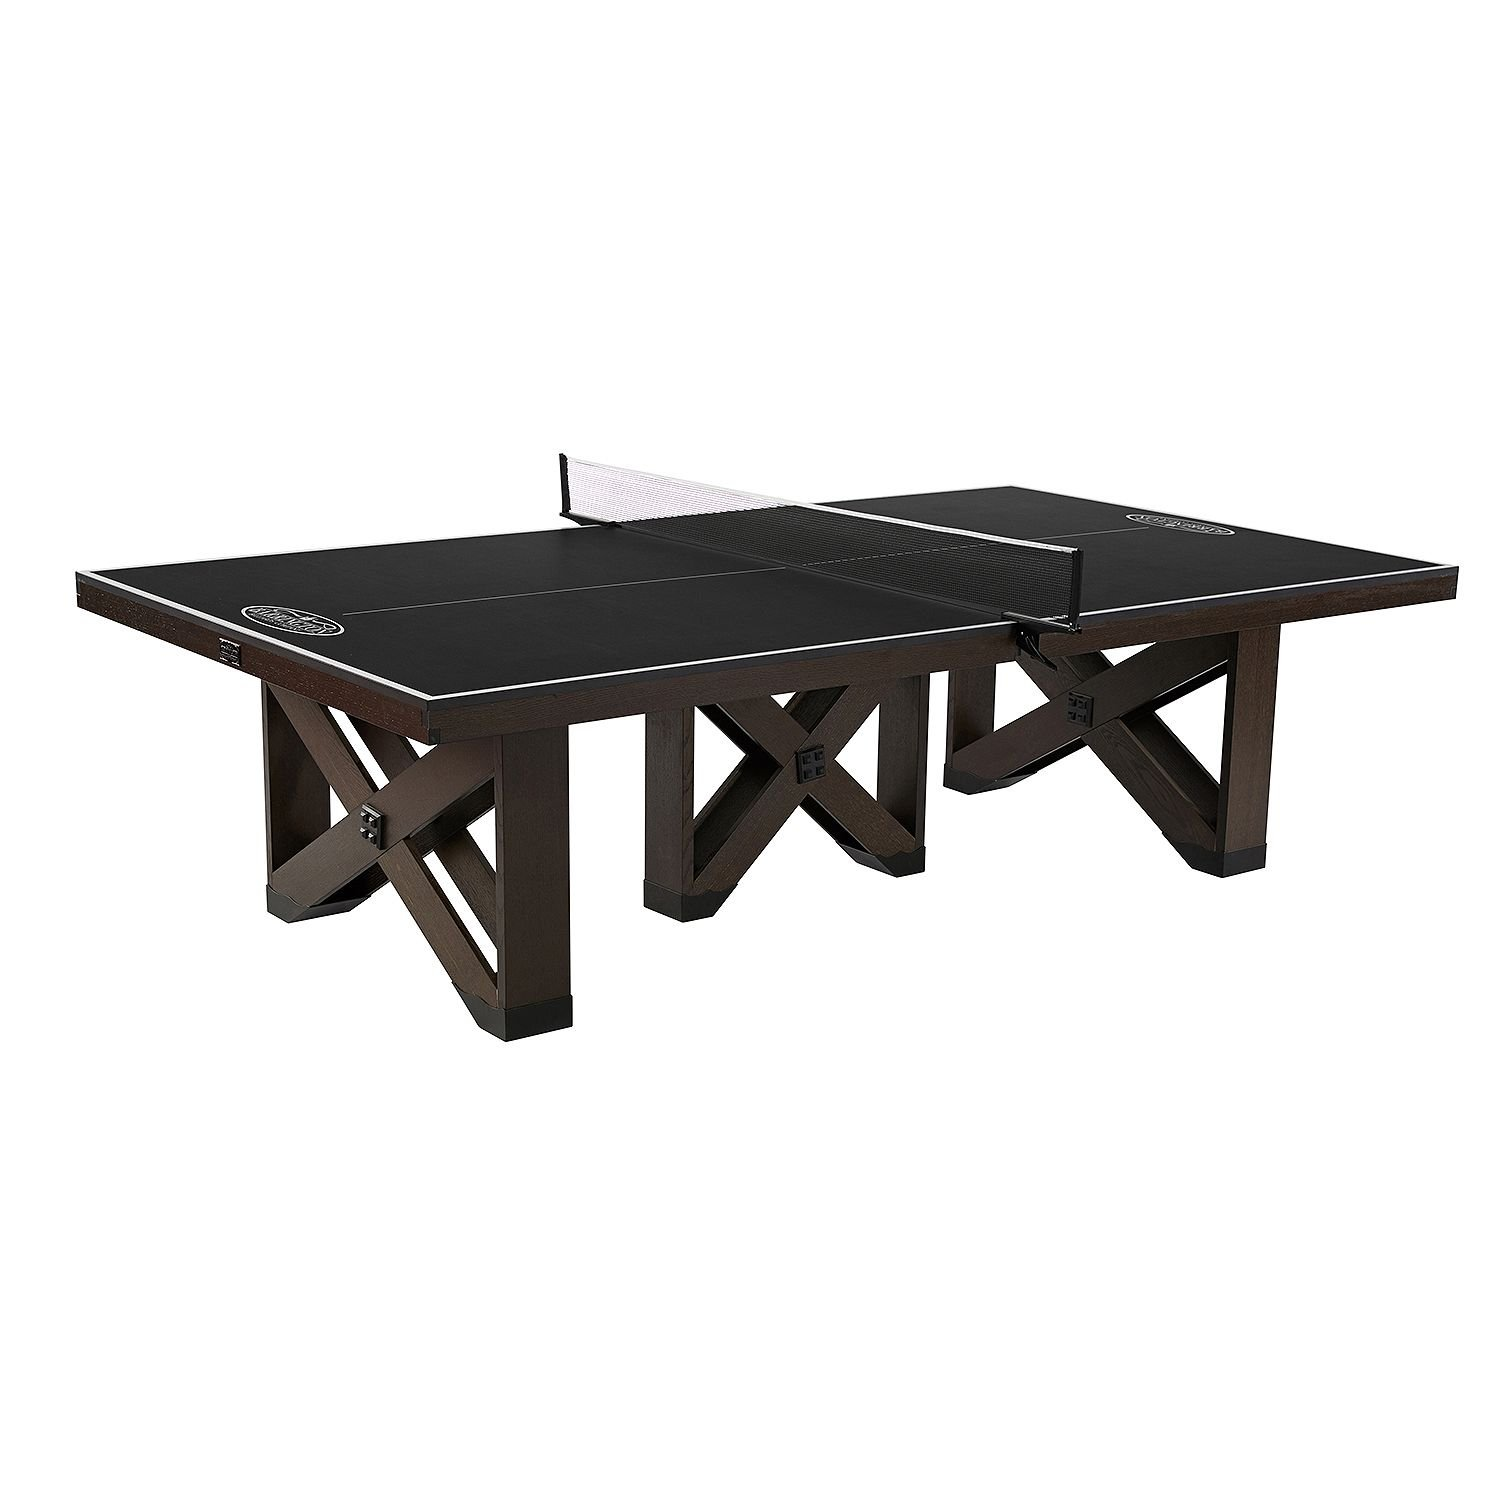 Official 9' x 5' Tournament Size Solid Wood Ping Pong Table Tennis Game